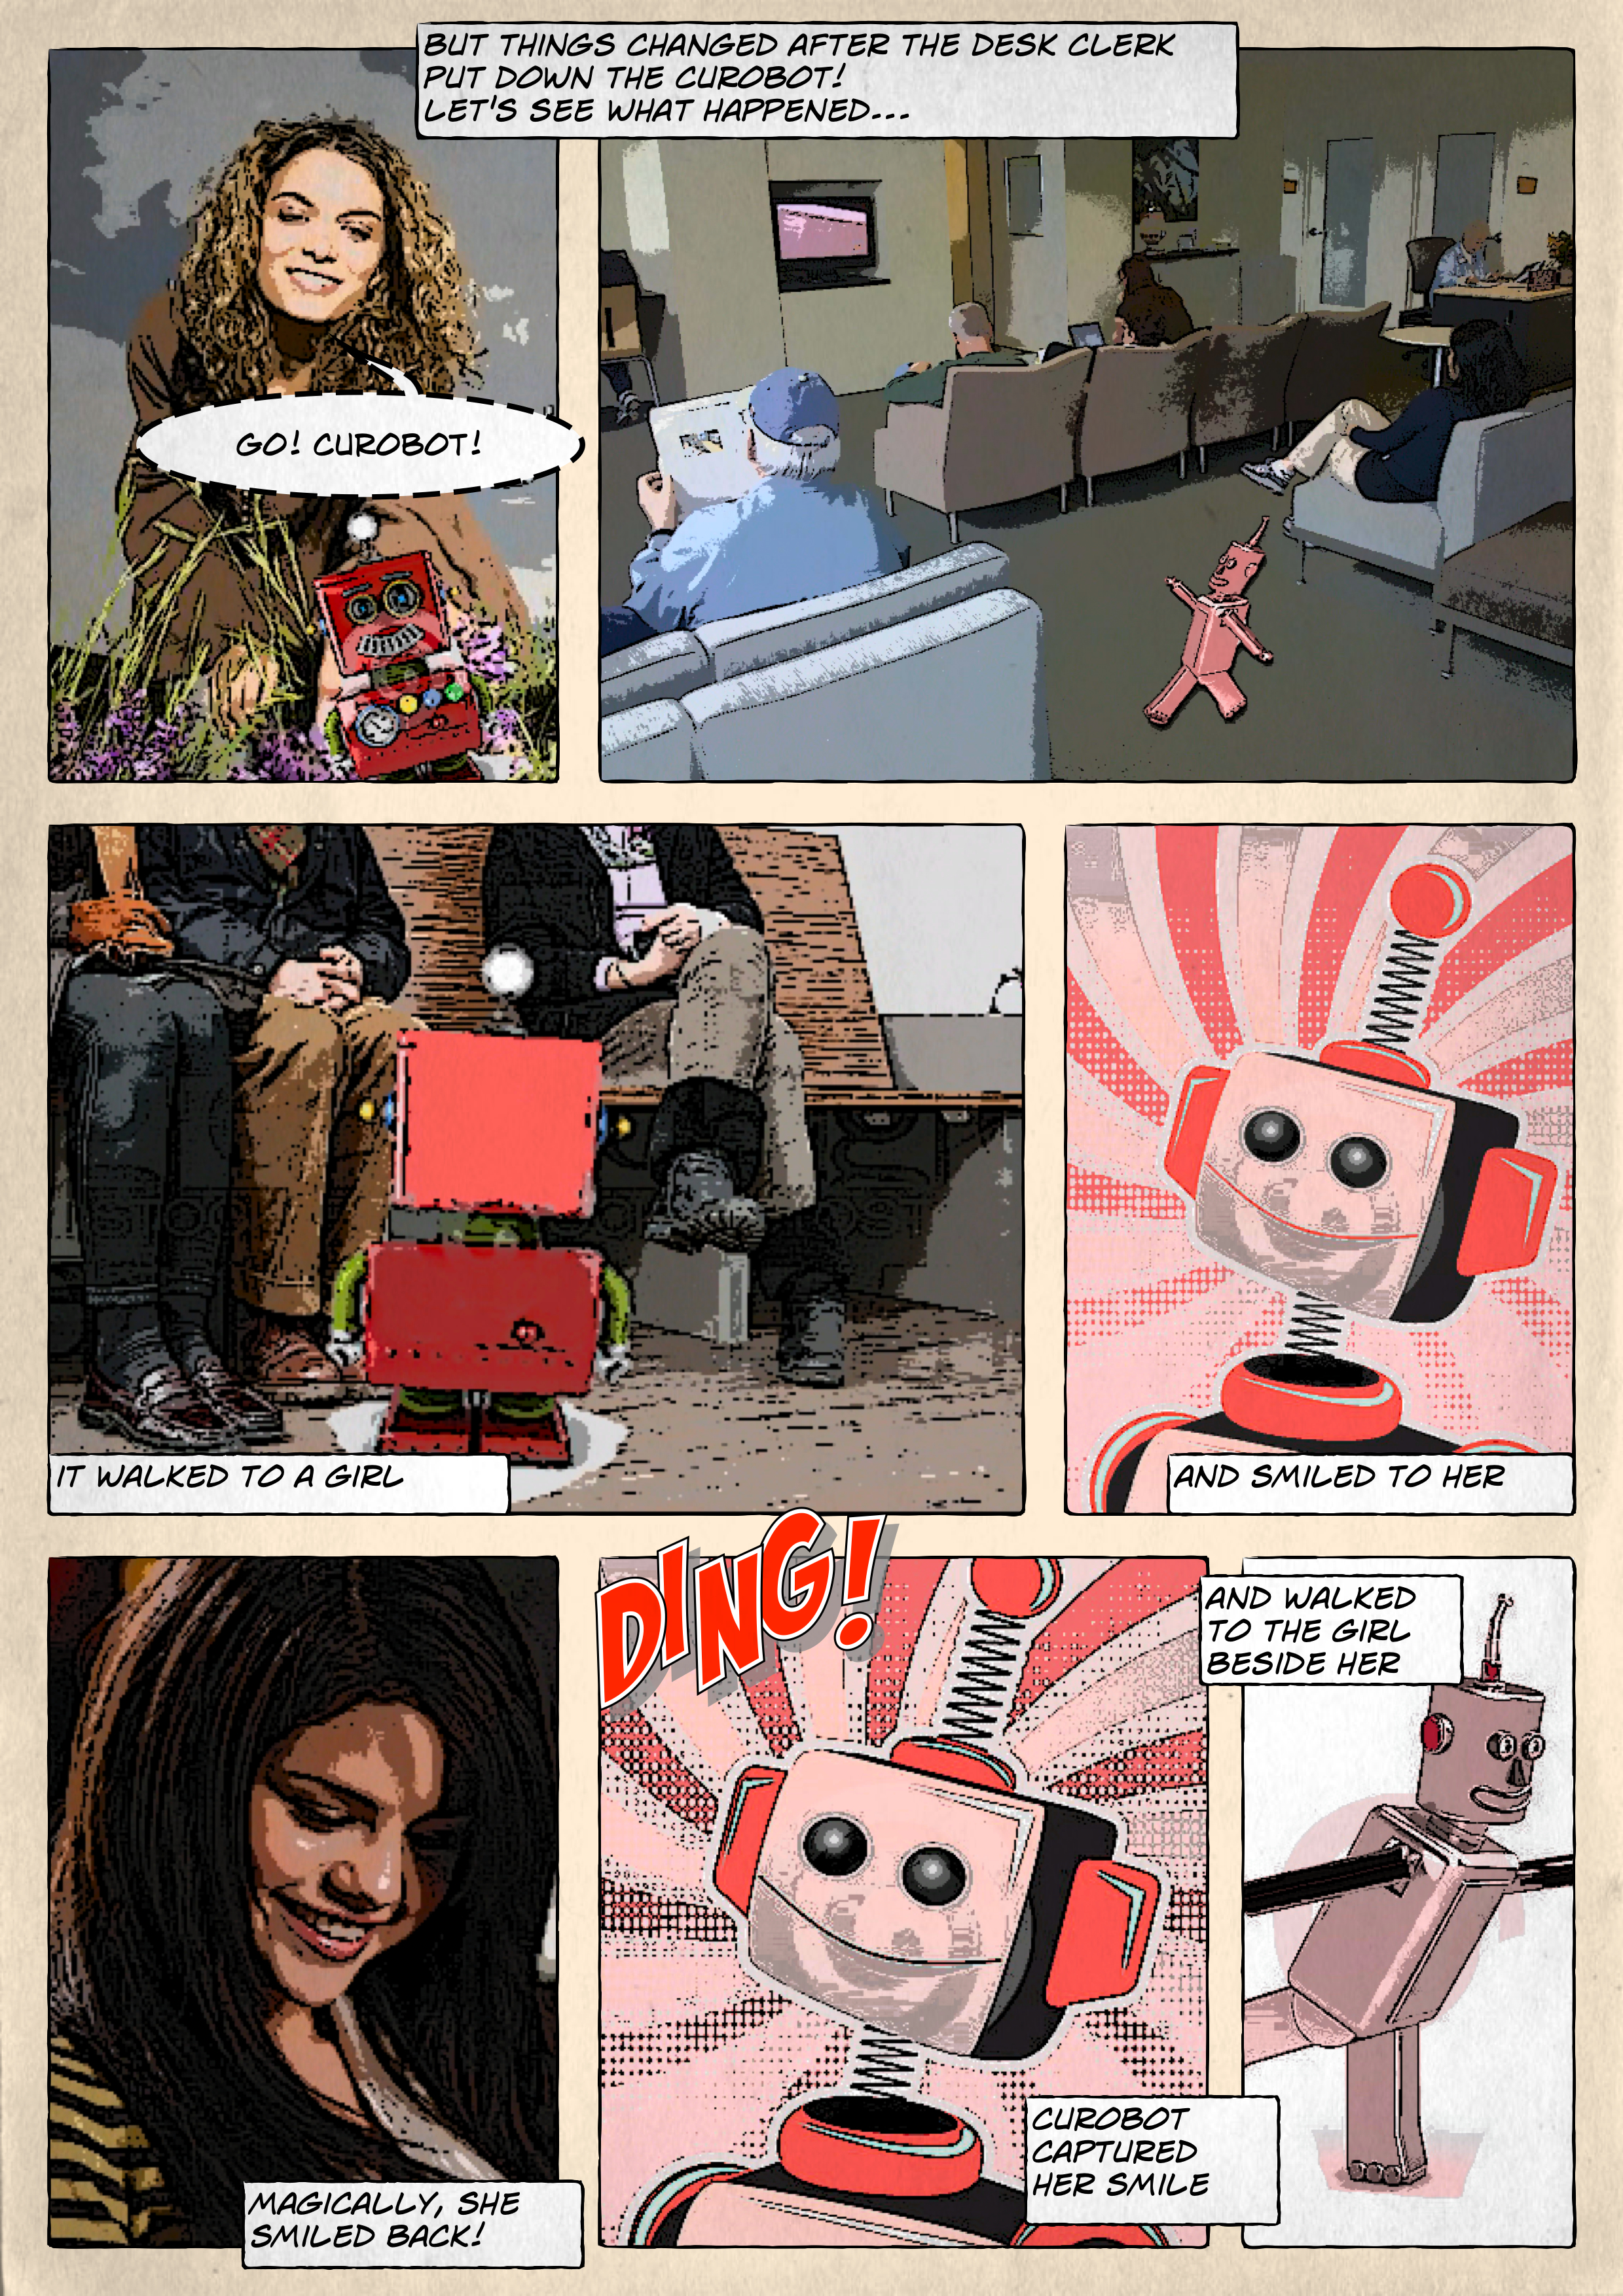 Storyboard for SmileBot